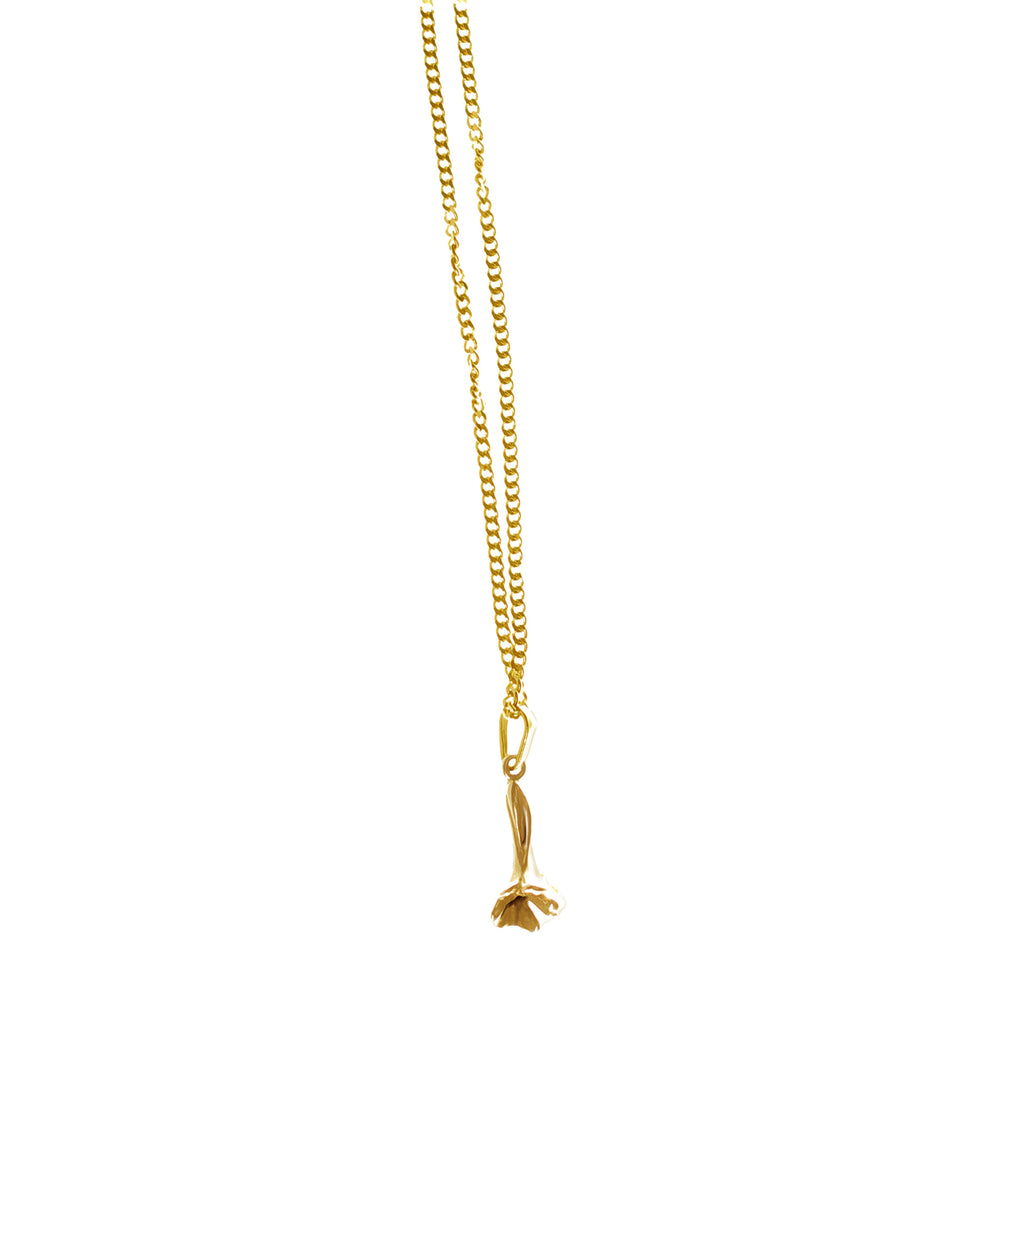 Lavander tiny pendant in yellow gold by Velar